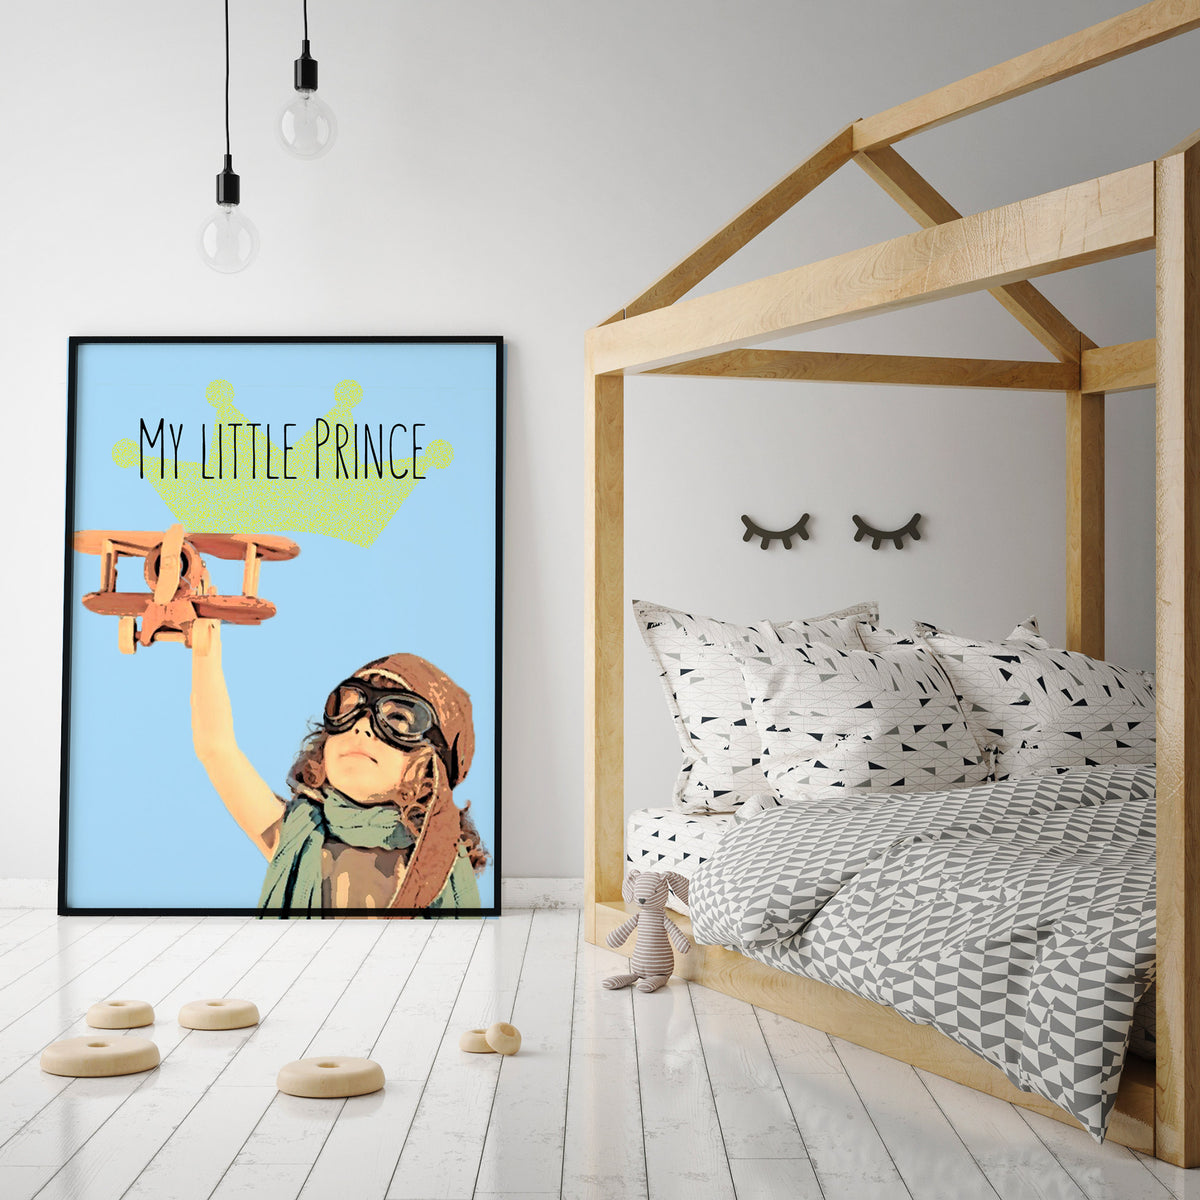 pop art frame - Custom art of kid in a Scandinavian style bedroom